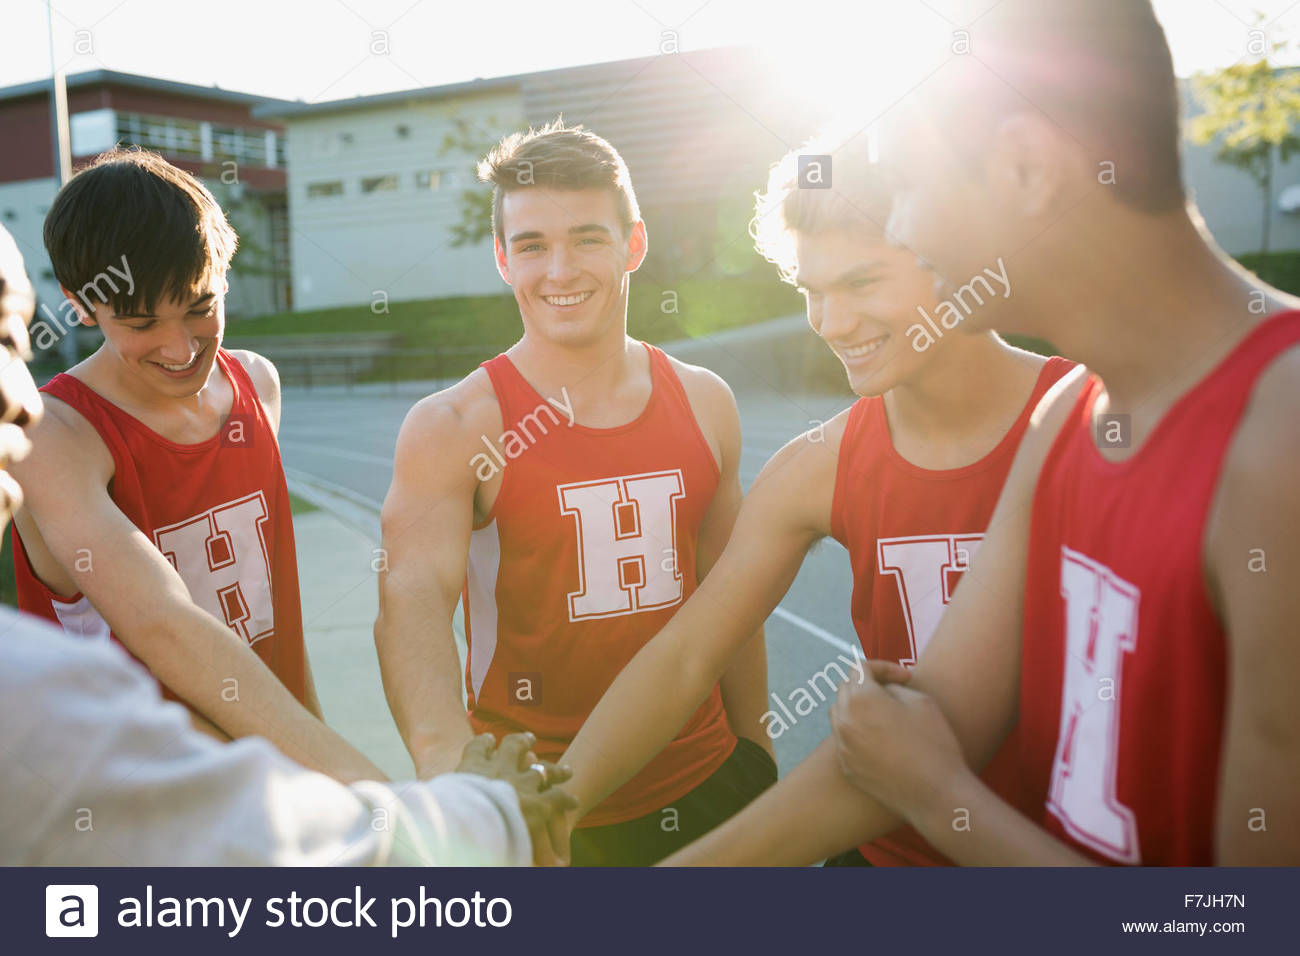 High school track and field team huddle - Stock Image